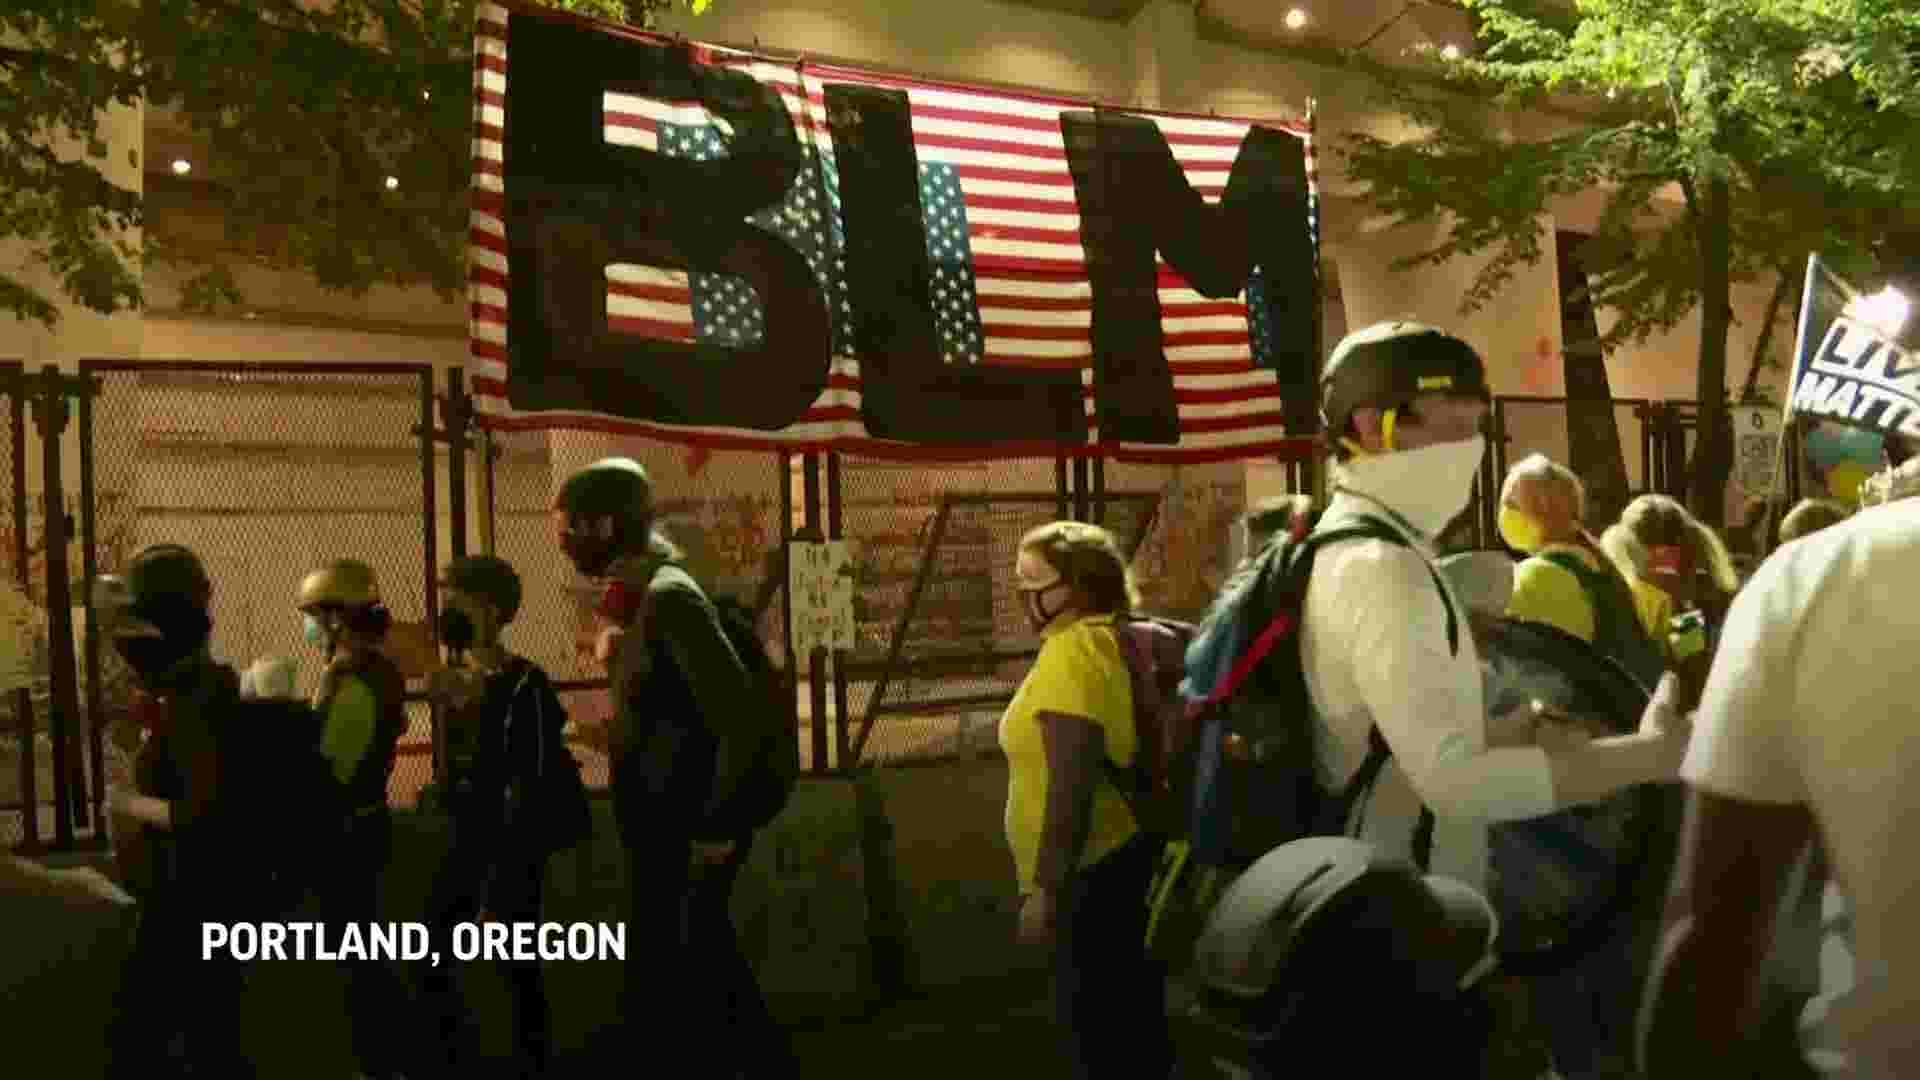 Hundreds peacefully protested in Portland 1